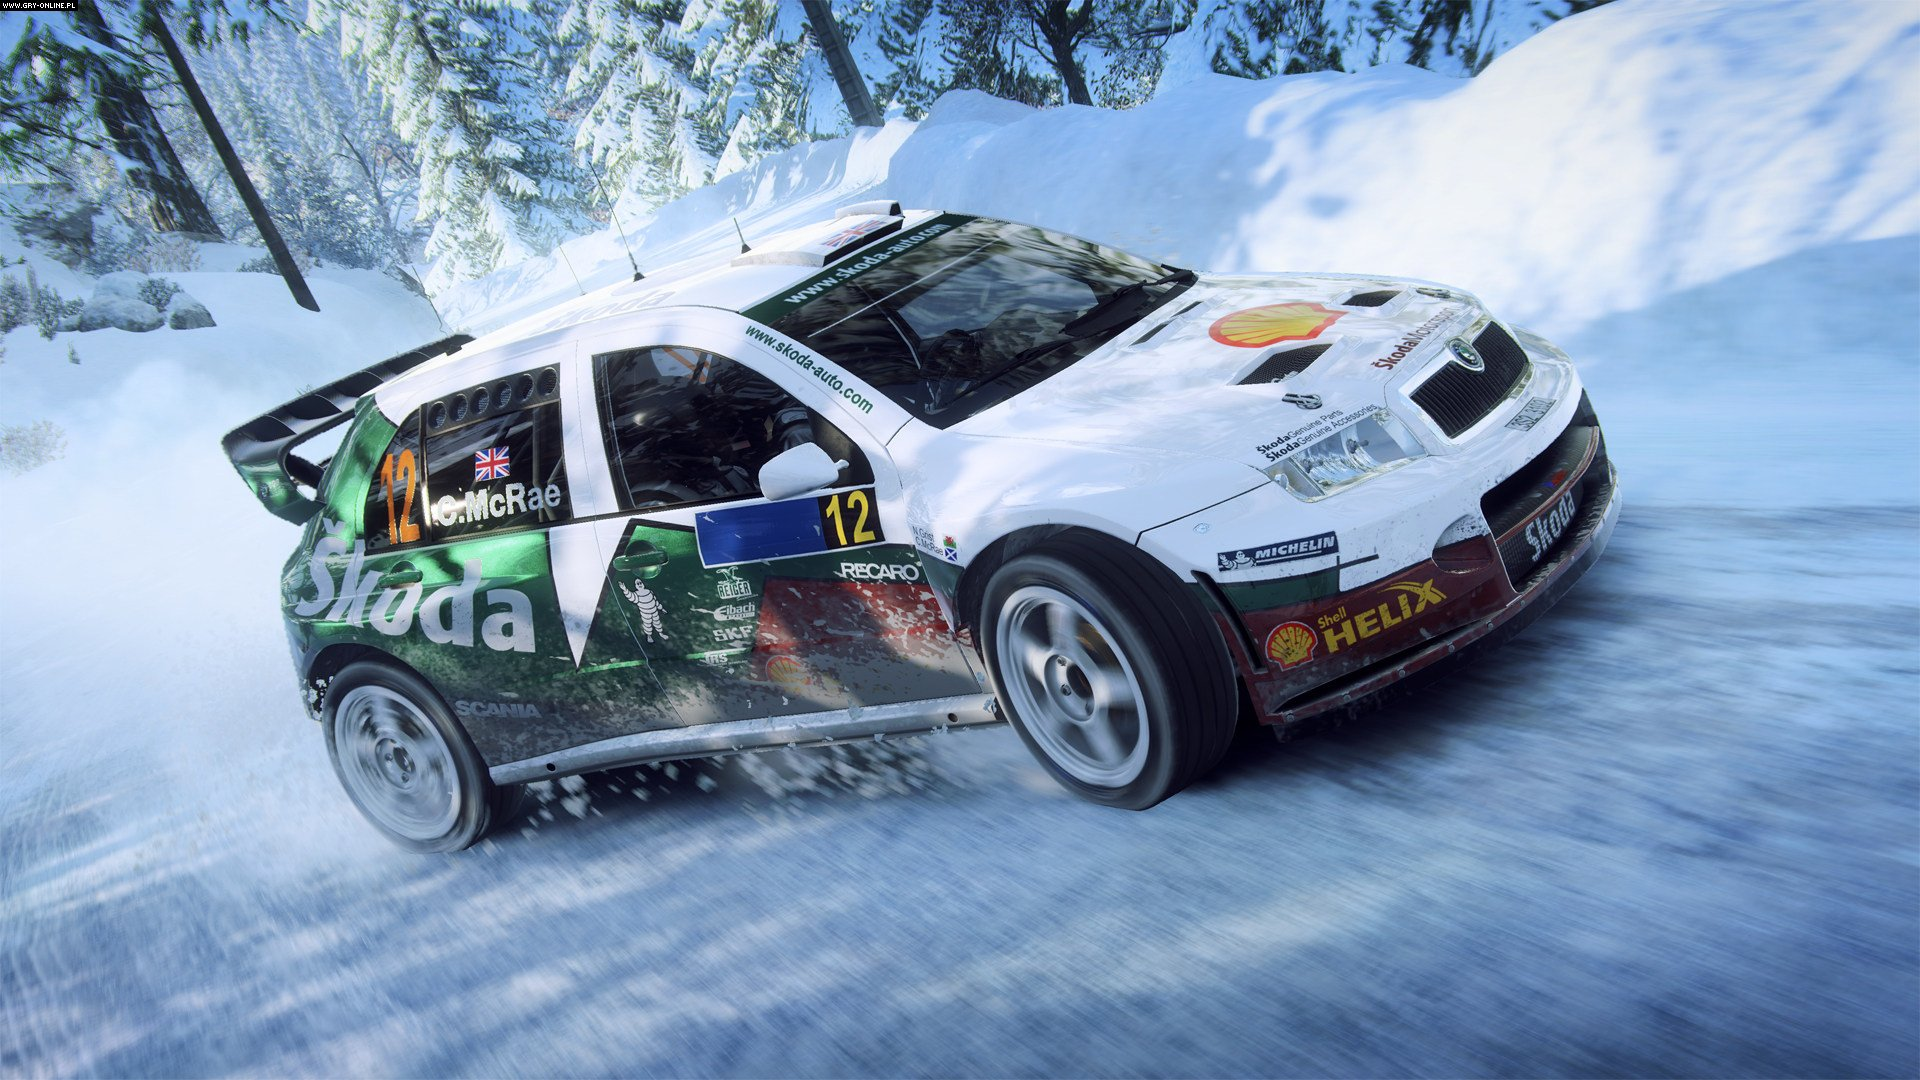 DiRT Rally 2.0 PC, PS4, XONE Games Image 3/49, Codemasters Software